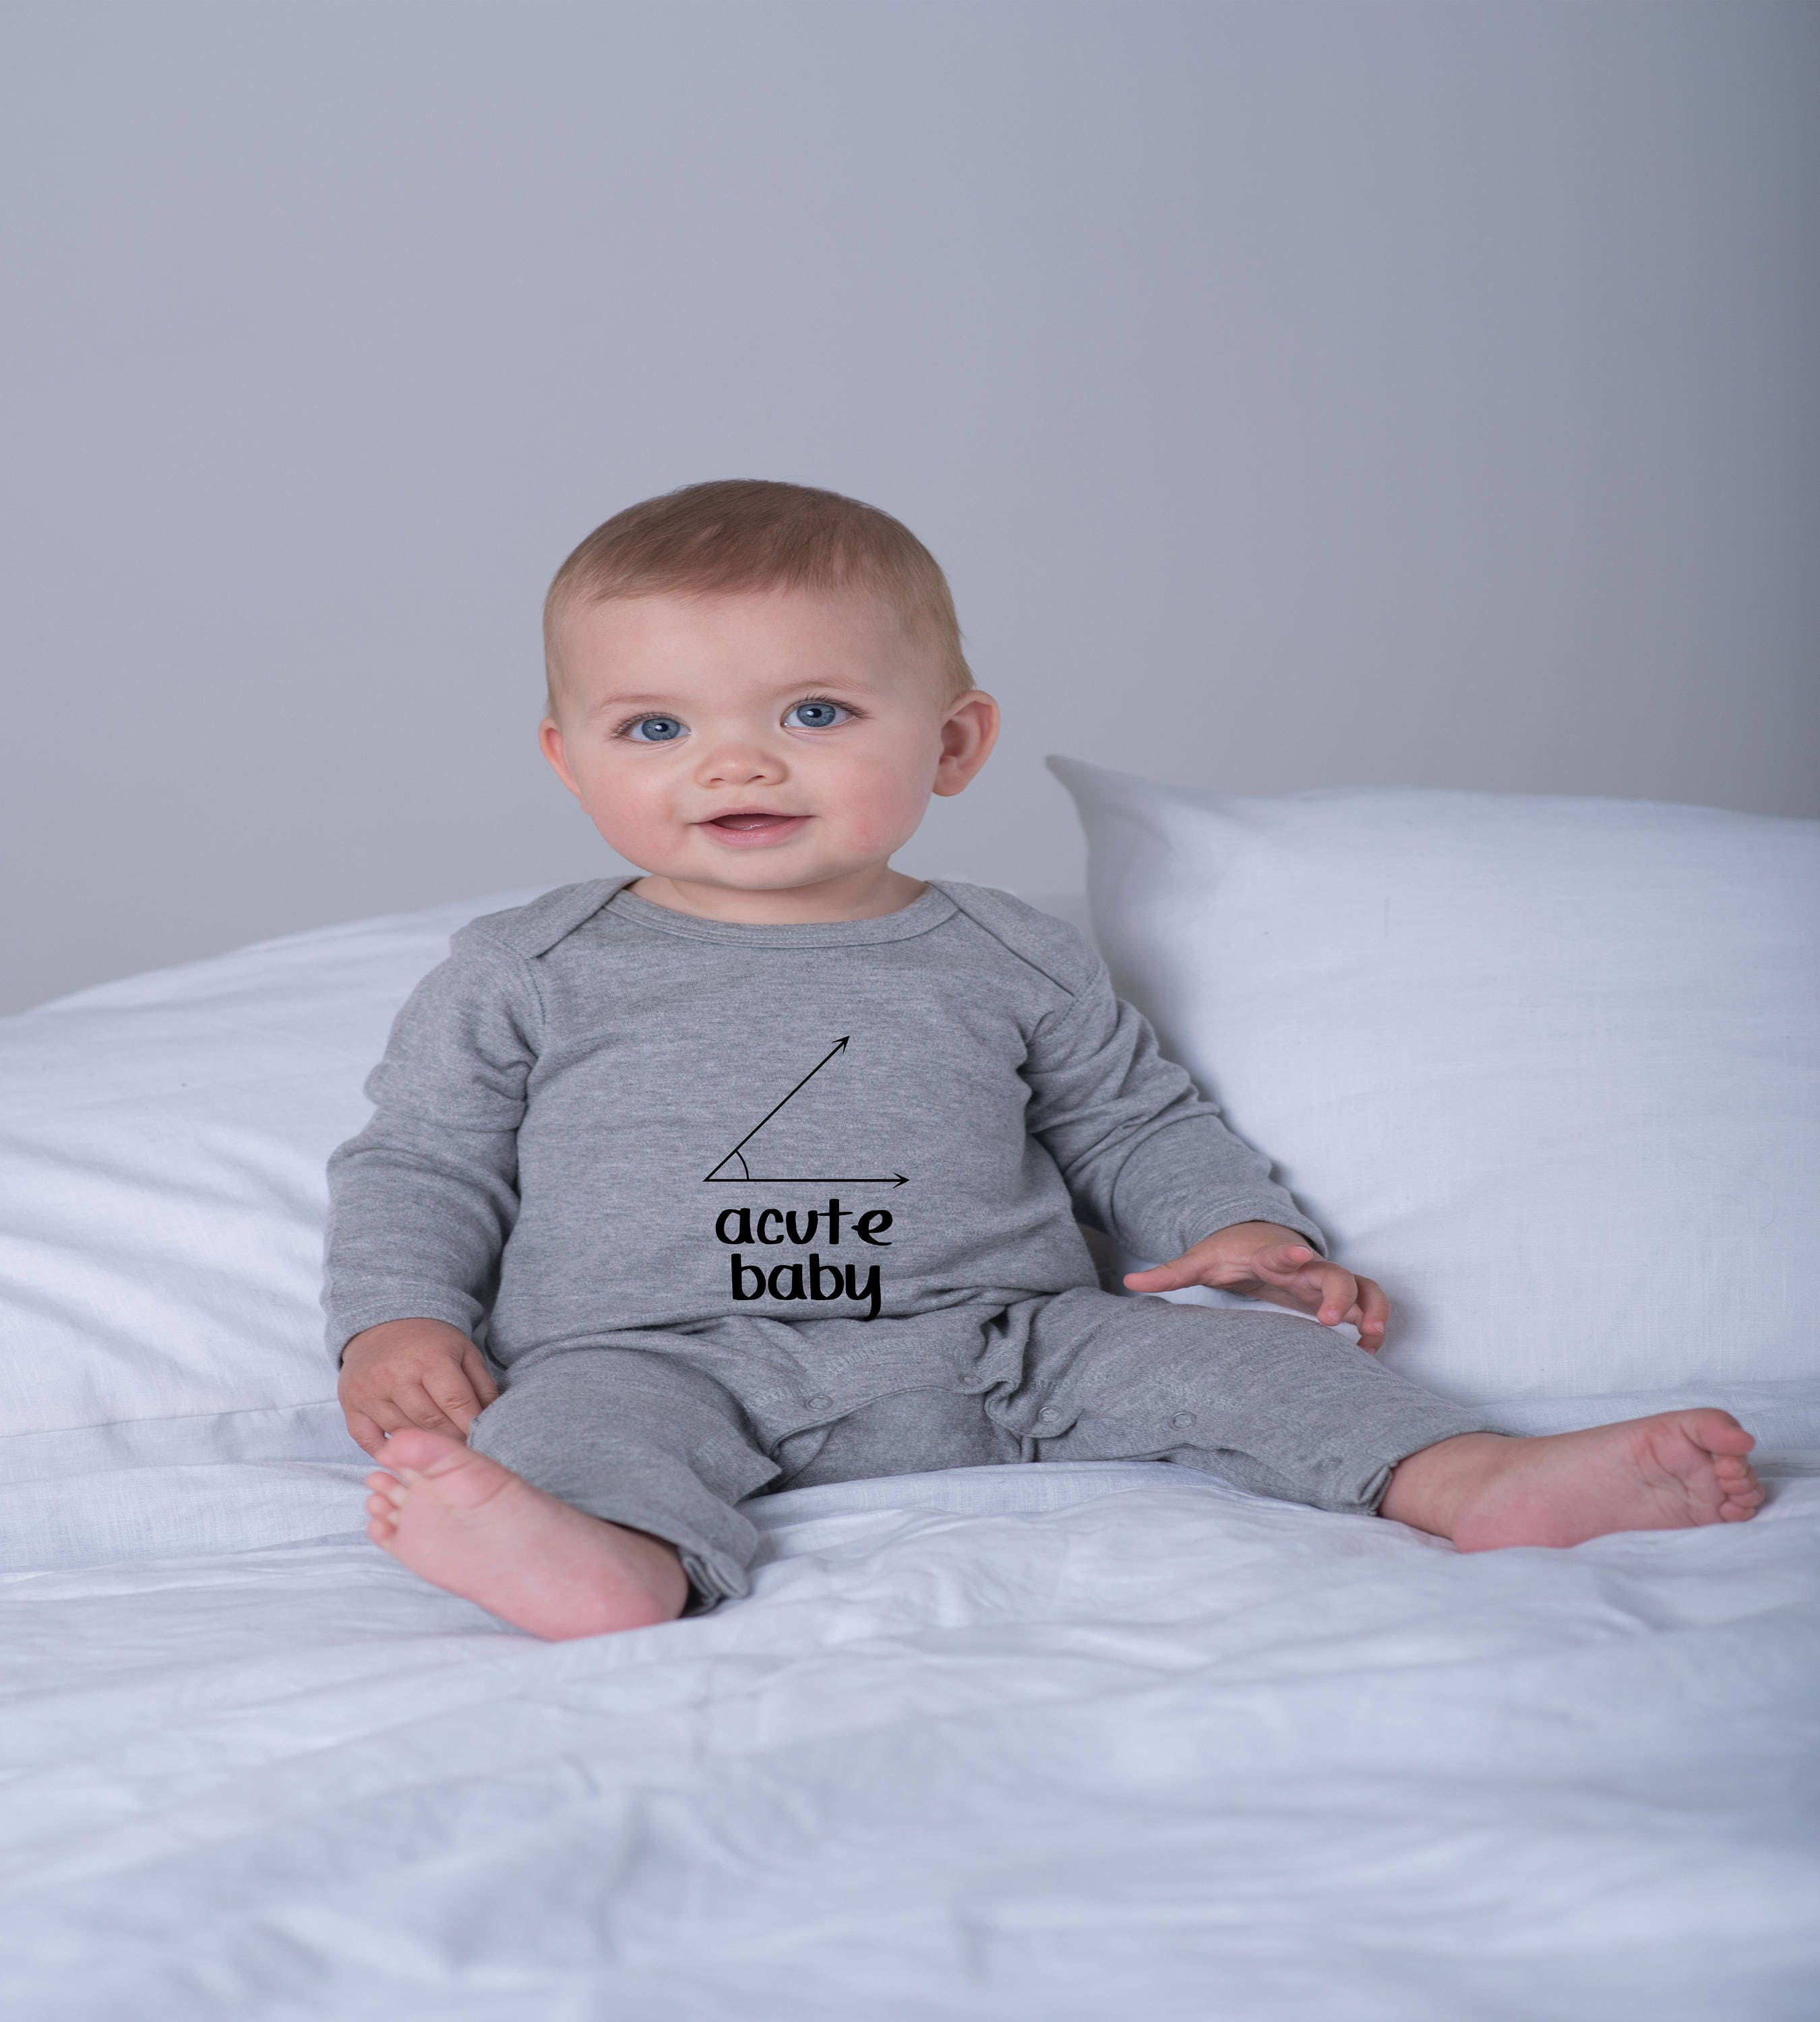 A cute baby acute baby maths geek angles baby romper baby clothing